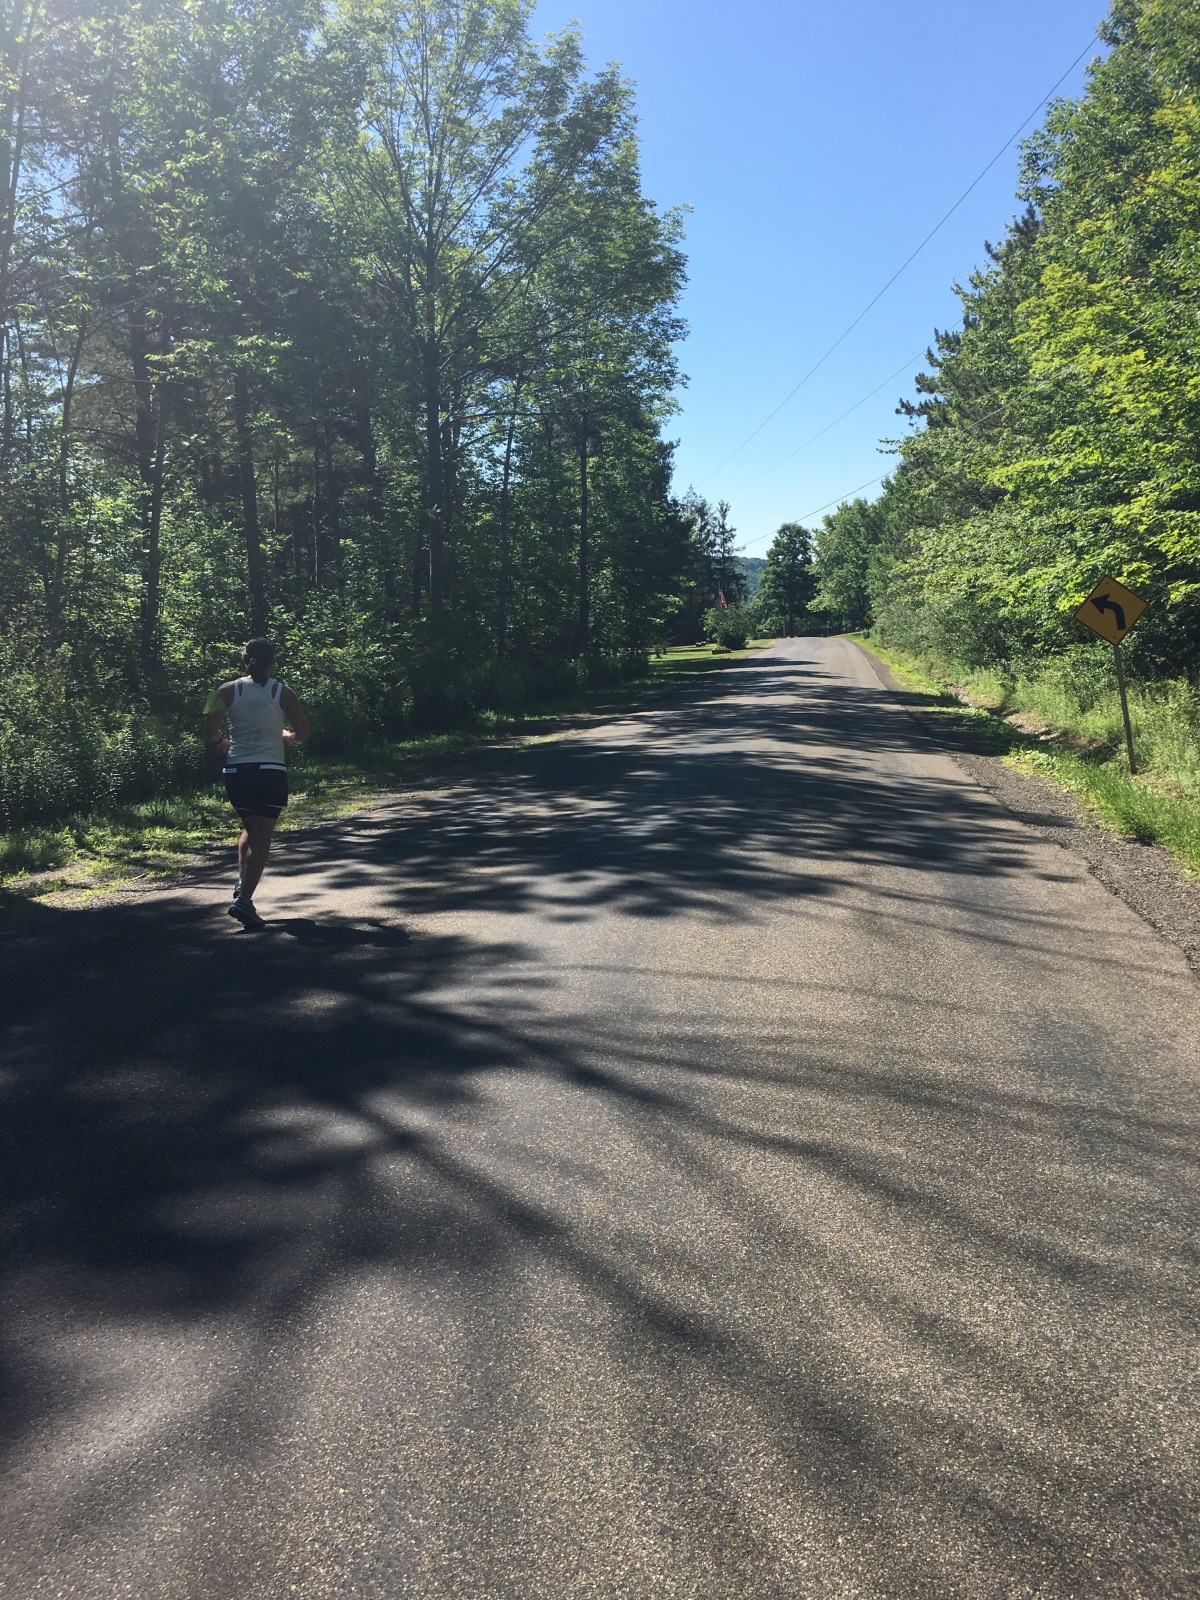 Marathon Training: Week 5 7/3-7/9/16